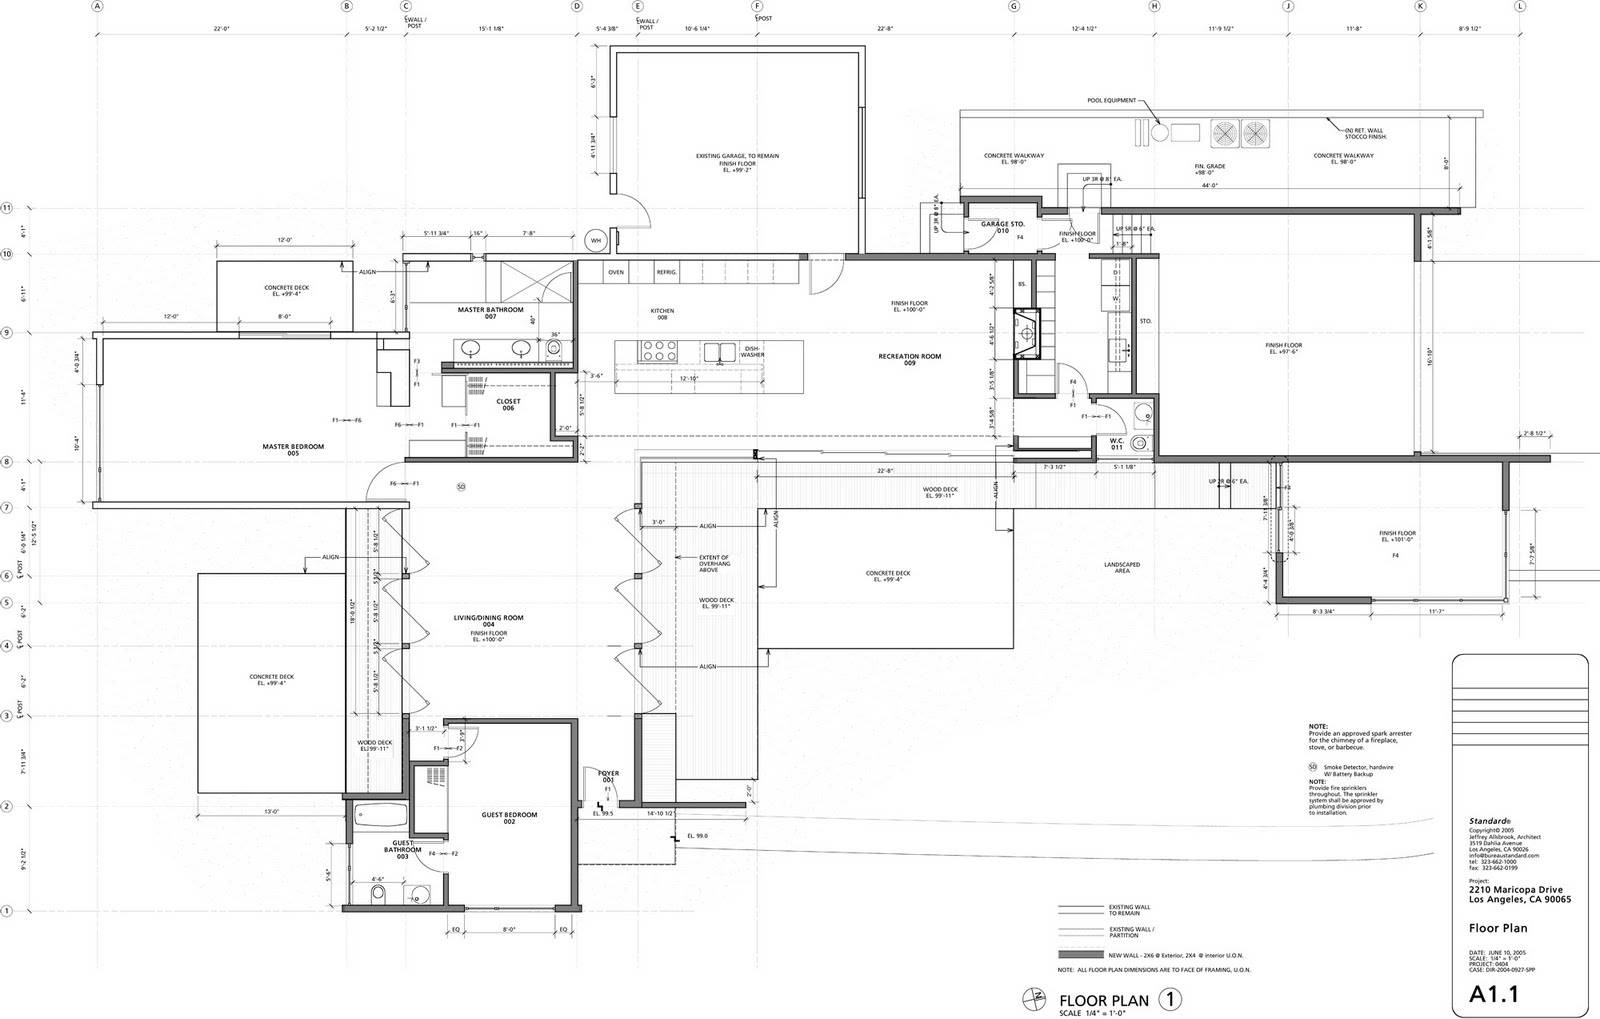 Agreeable closet gun safe plans roselawnlutheran for House plans with hidden rooms